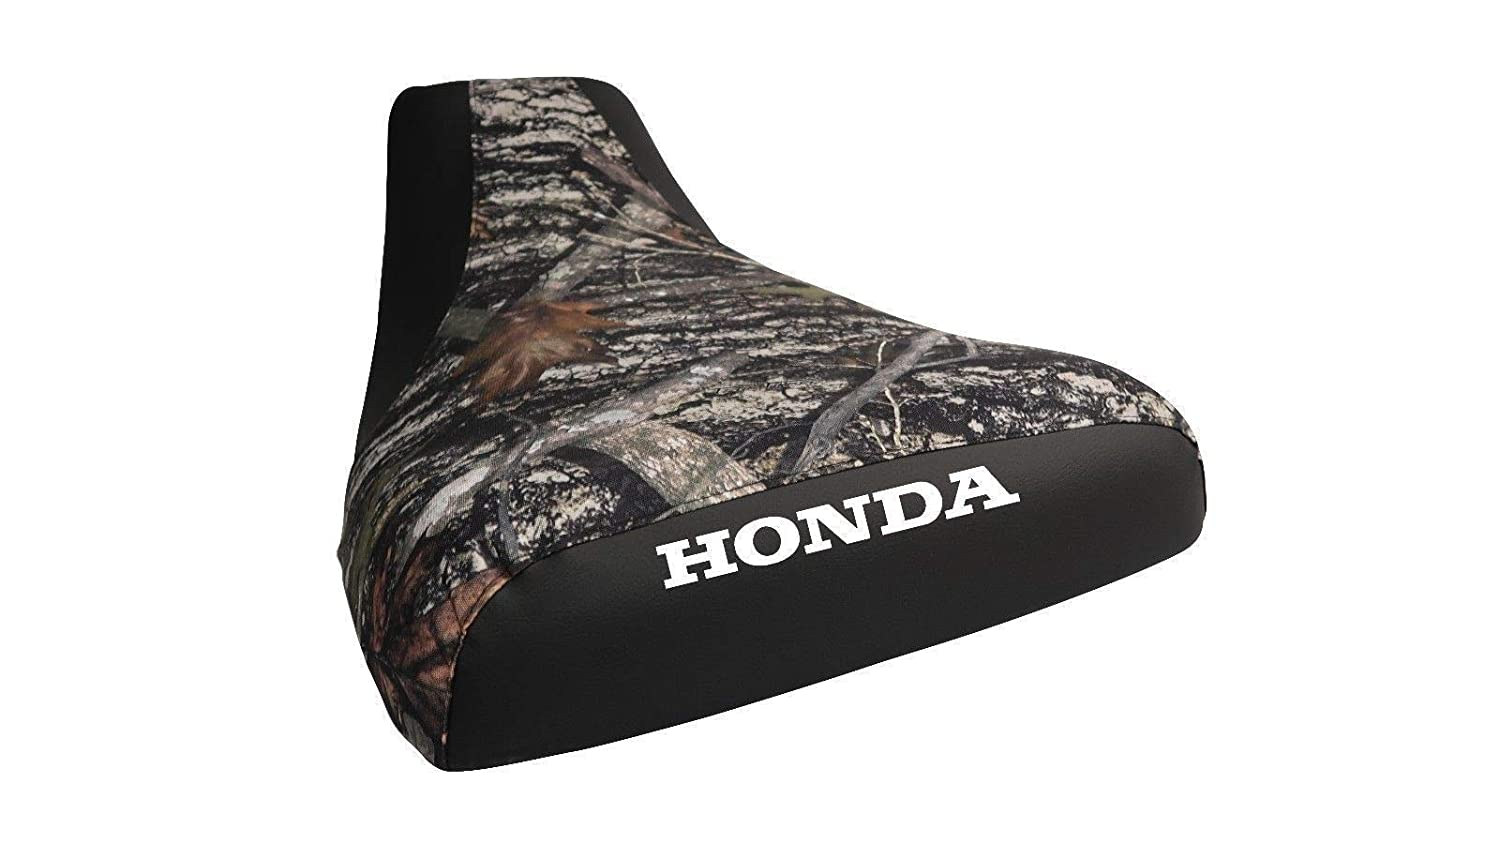 VPS Seat Cover Compatible With Honda Foreman TRX450S 1998-2000 Standard ATV Seat Cover